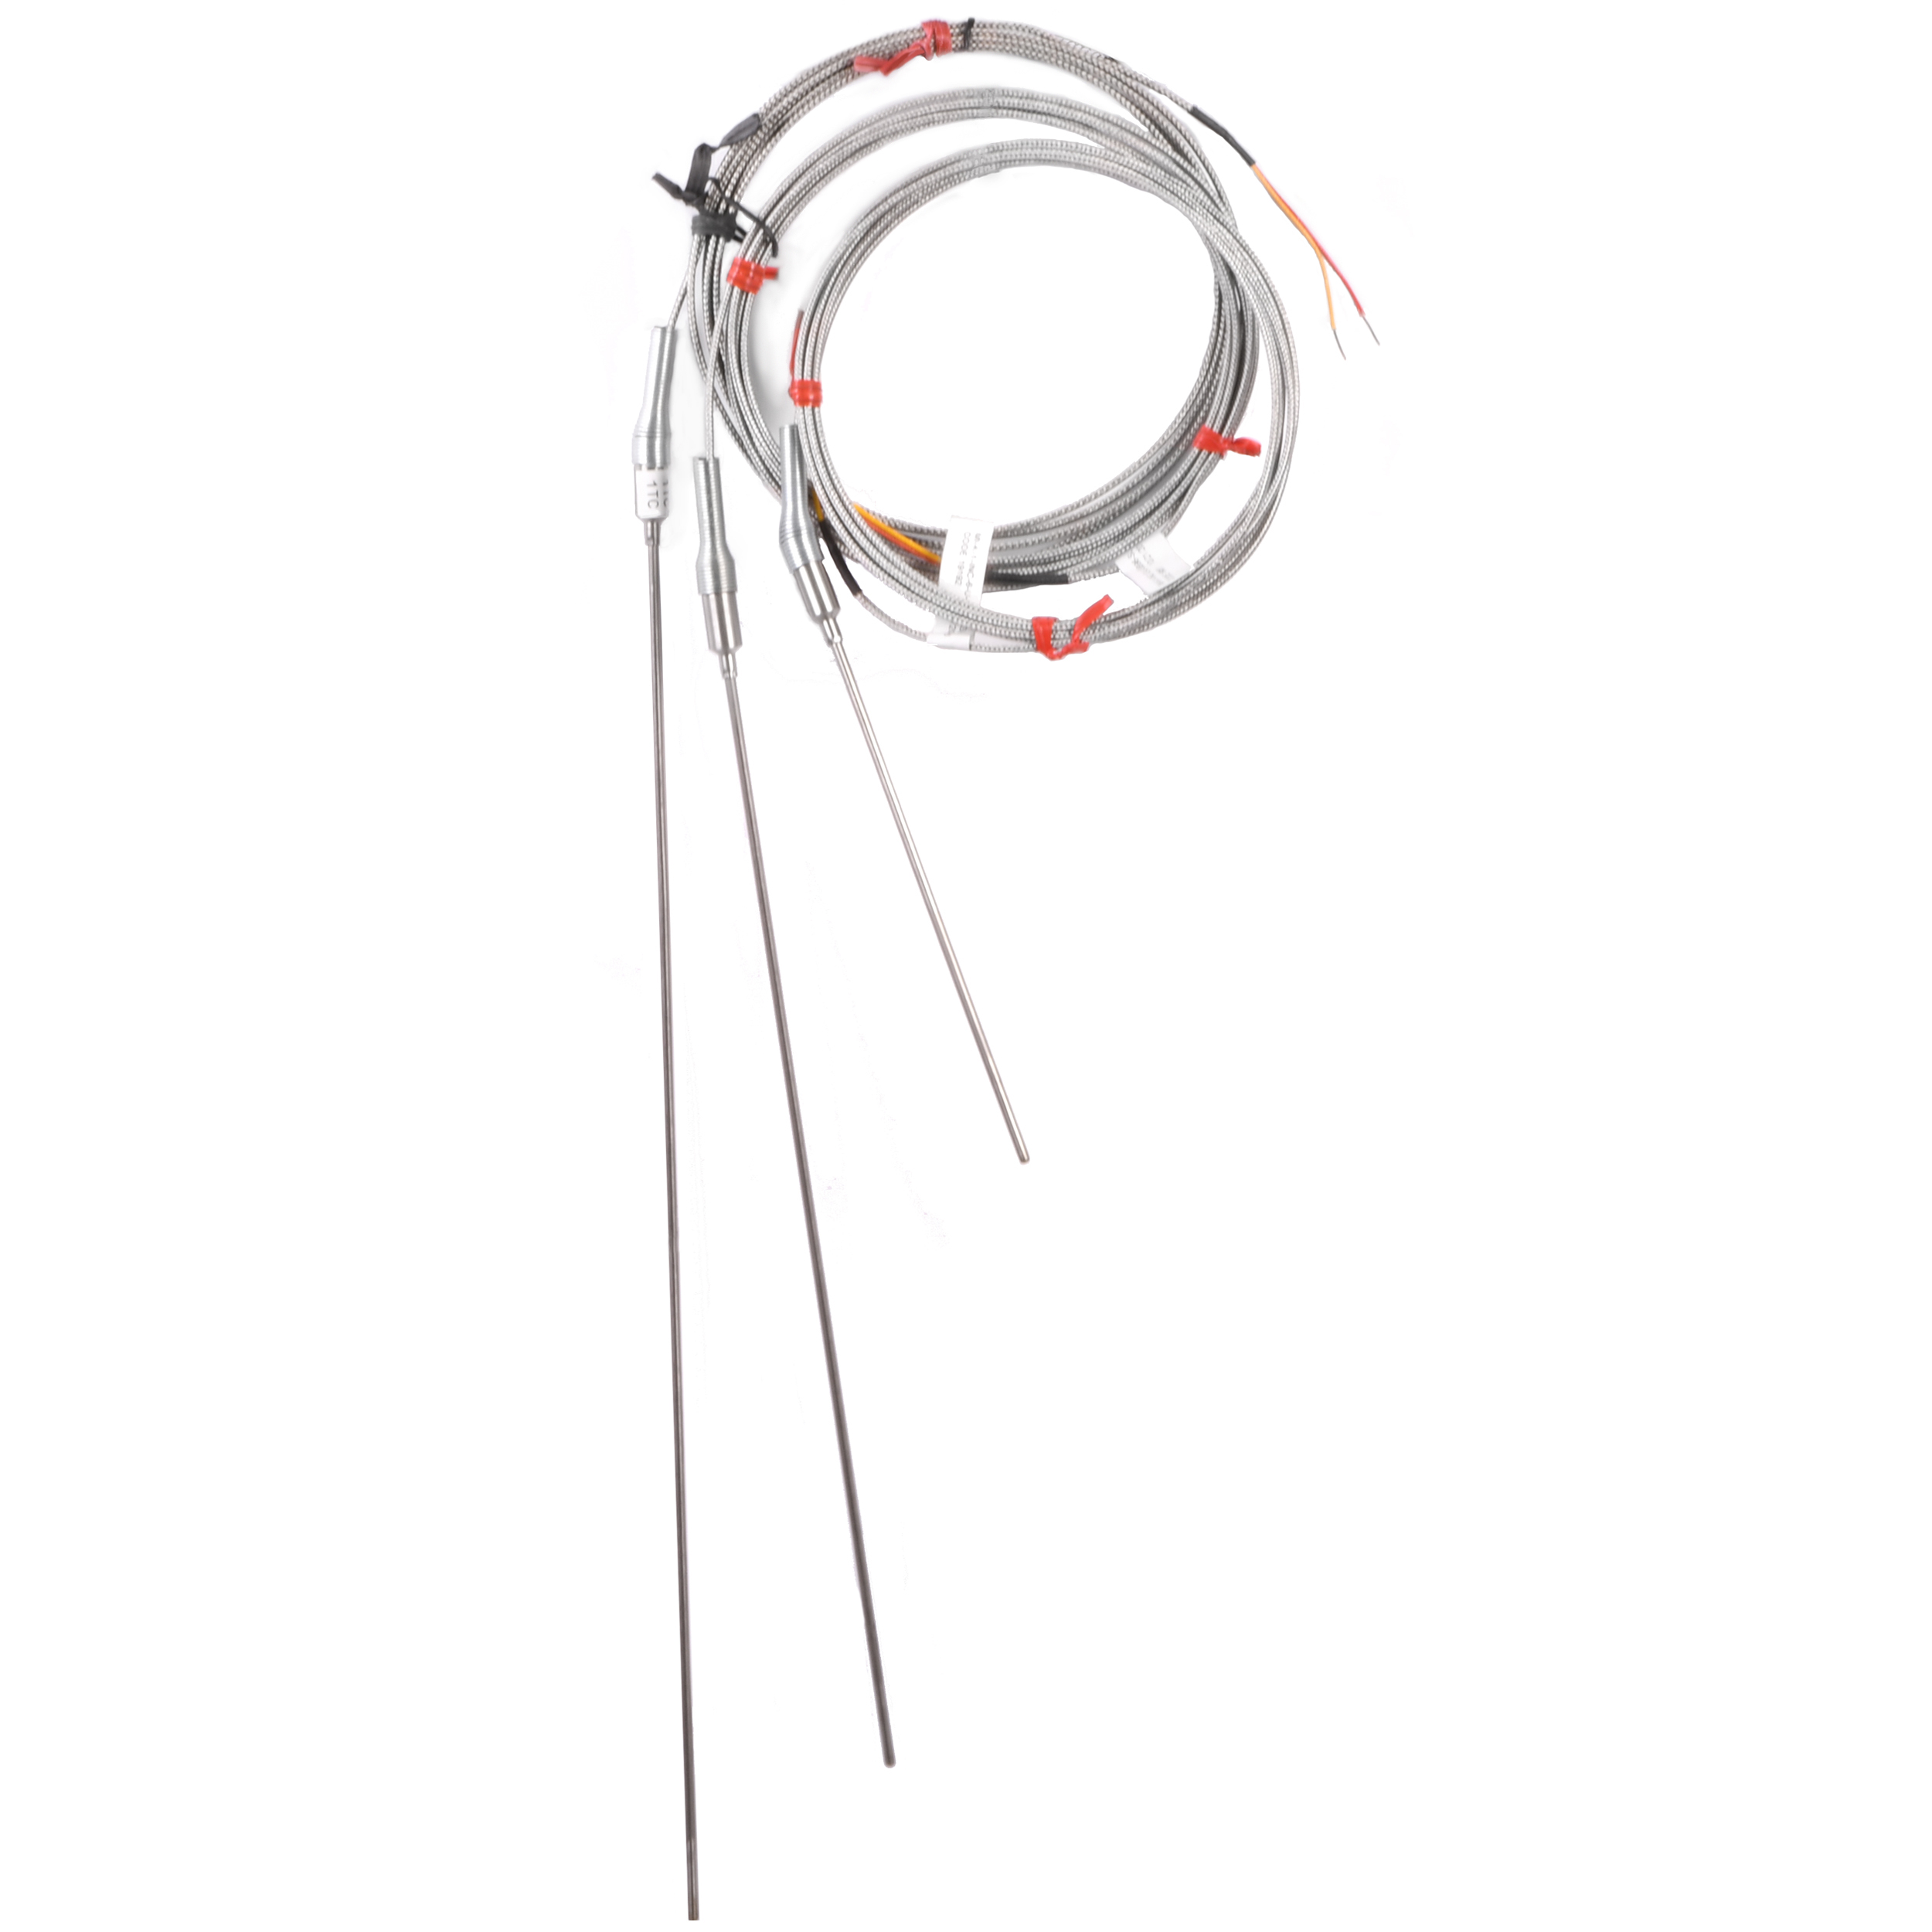 TYPE K-TEMPERATURE SENSORS